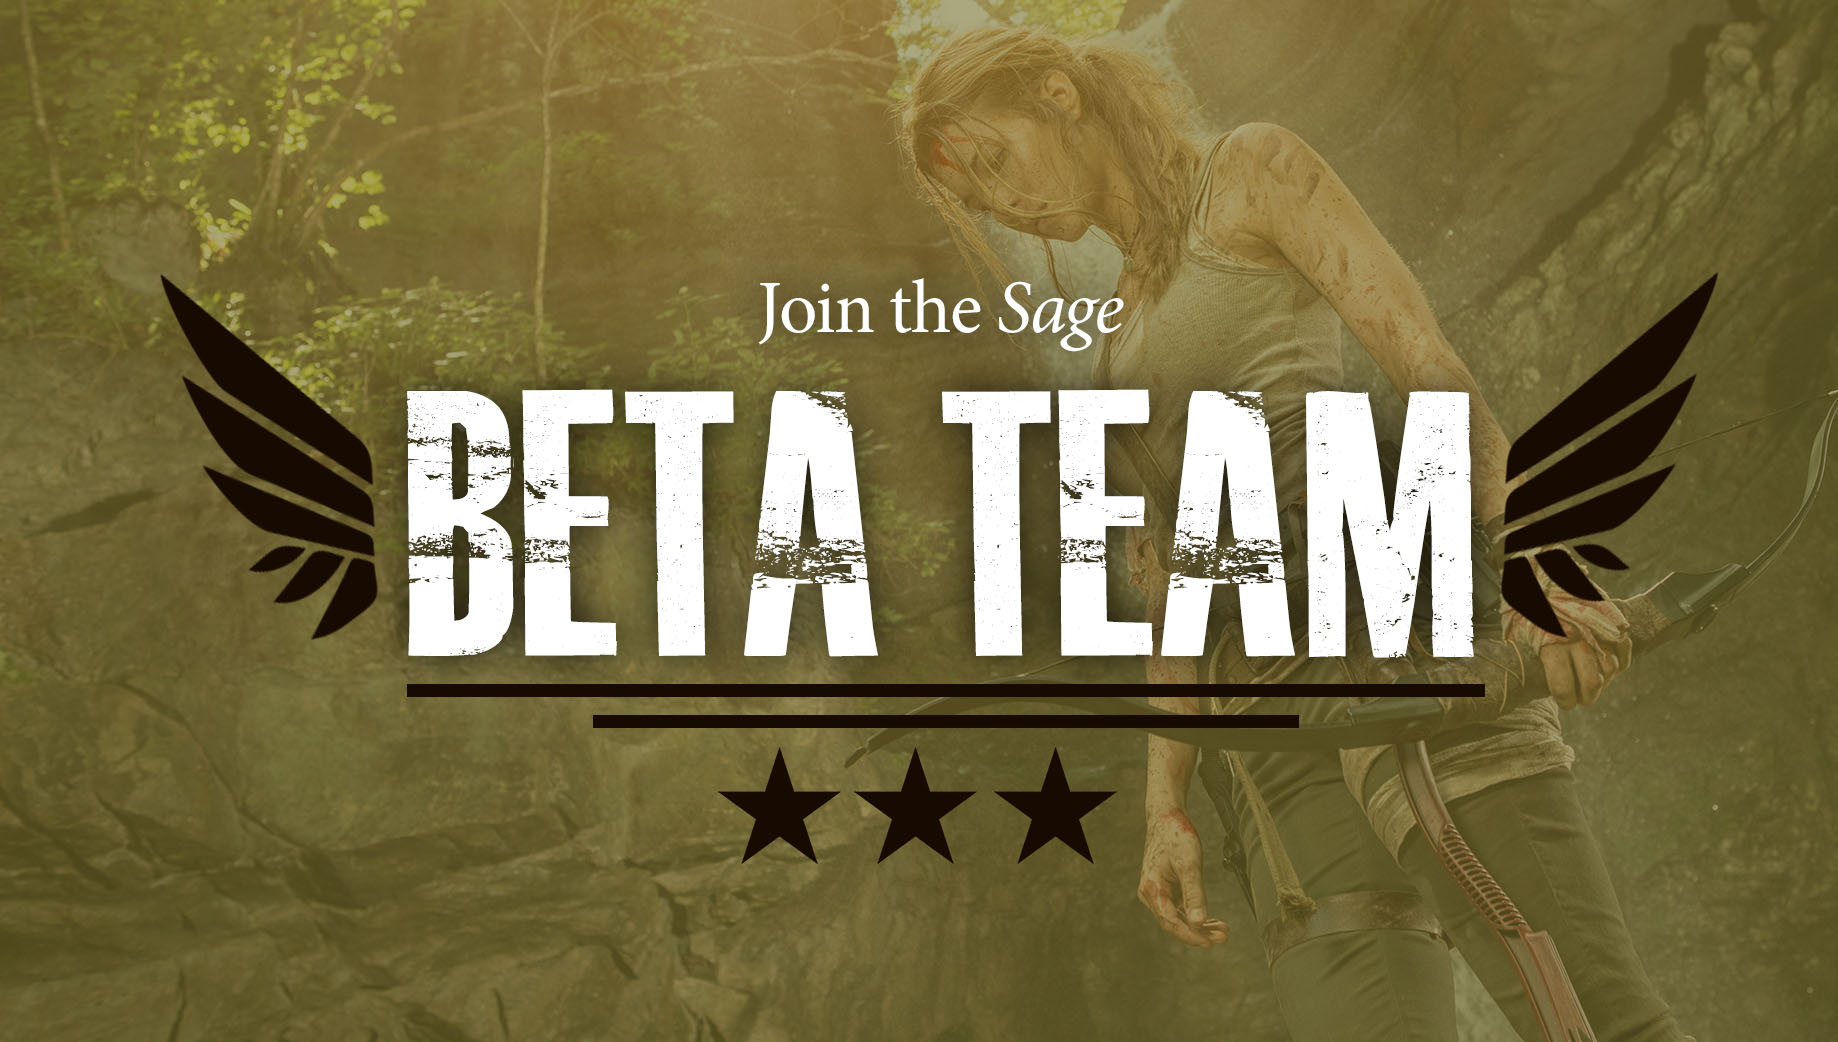 Can't wait for book 3? Join the Sage Beta Reader Team